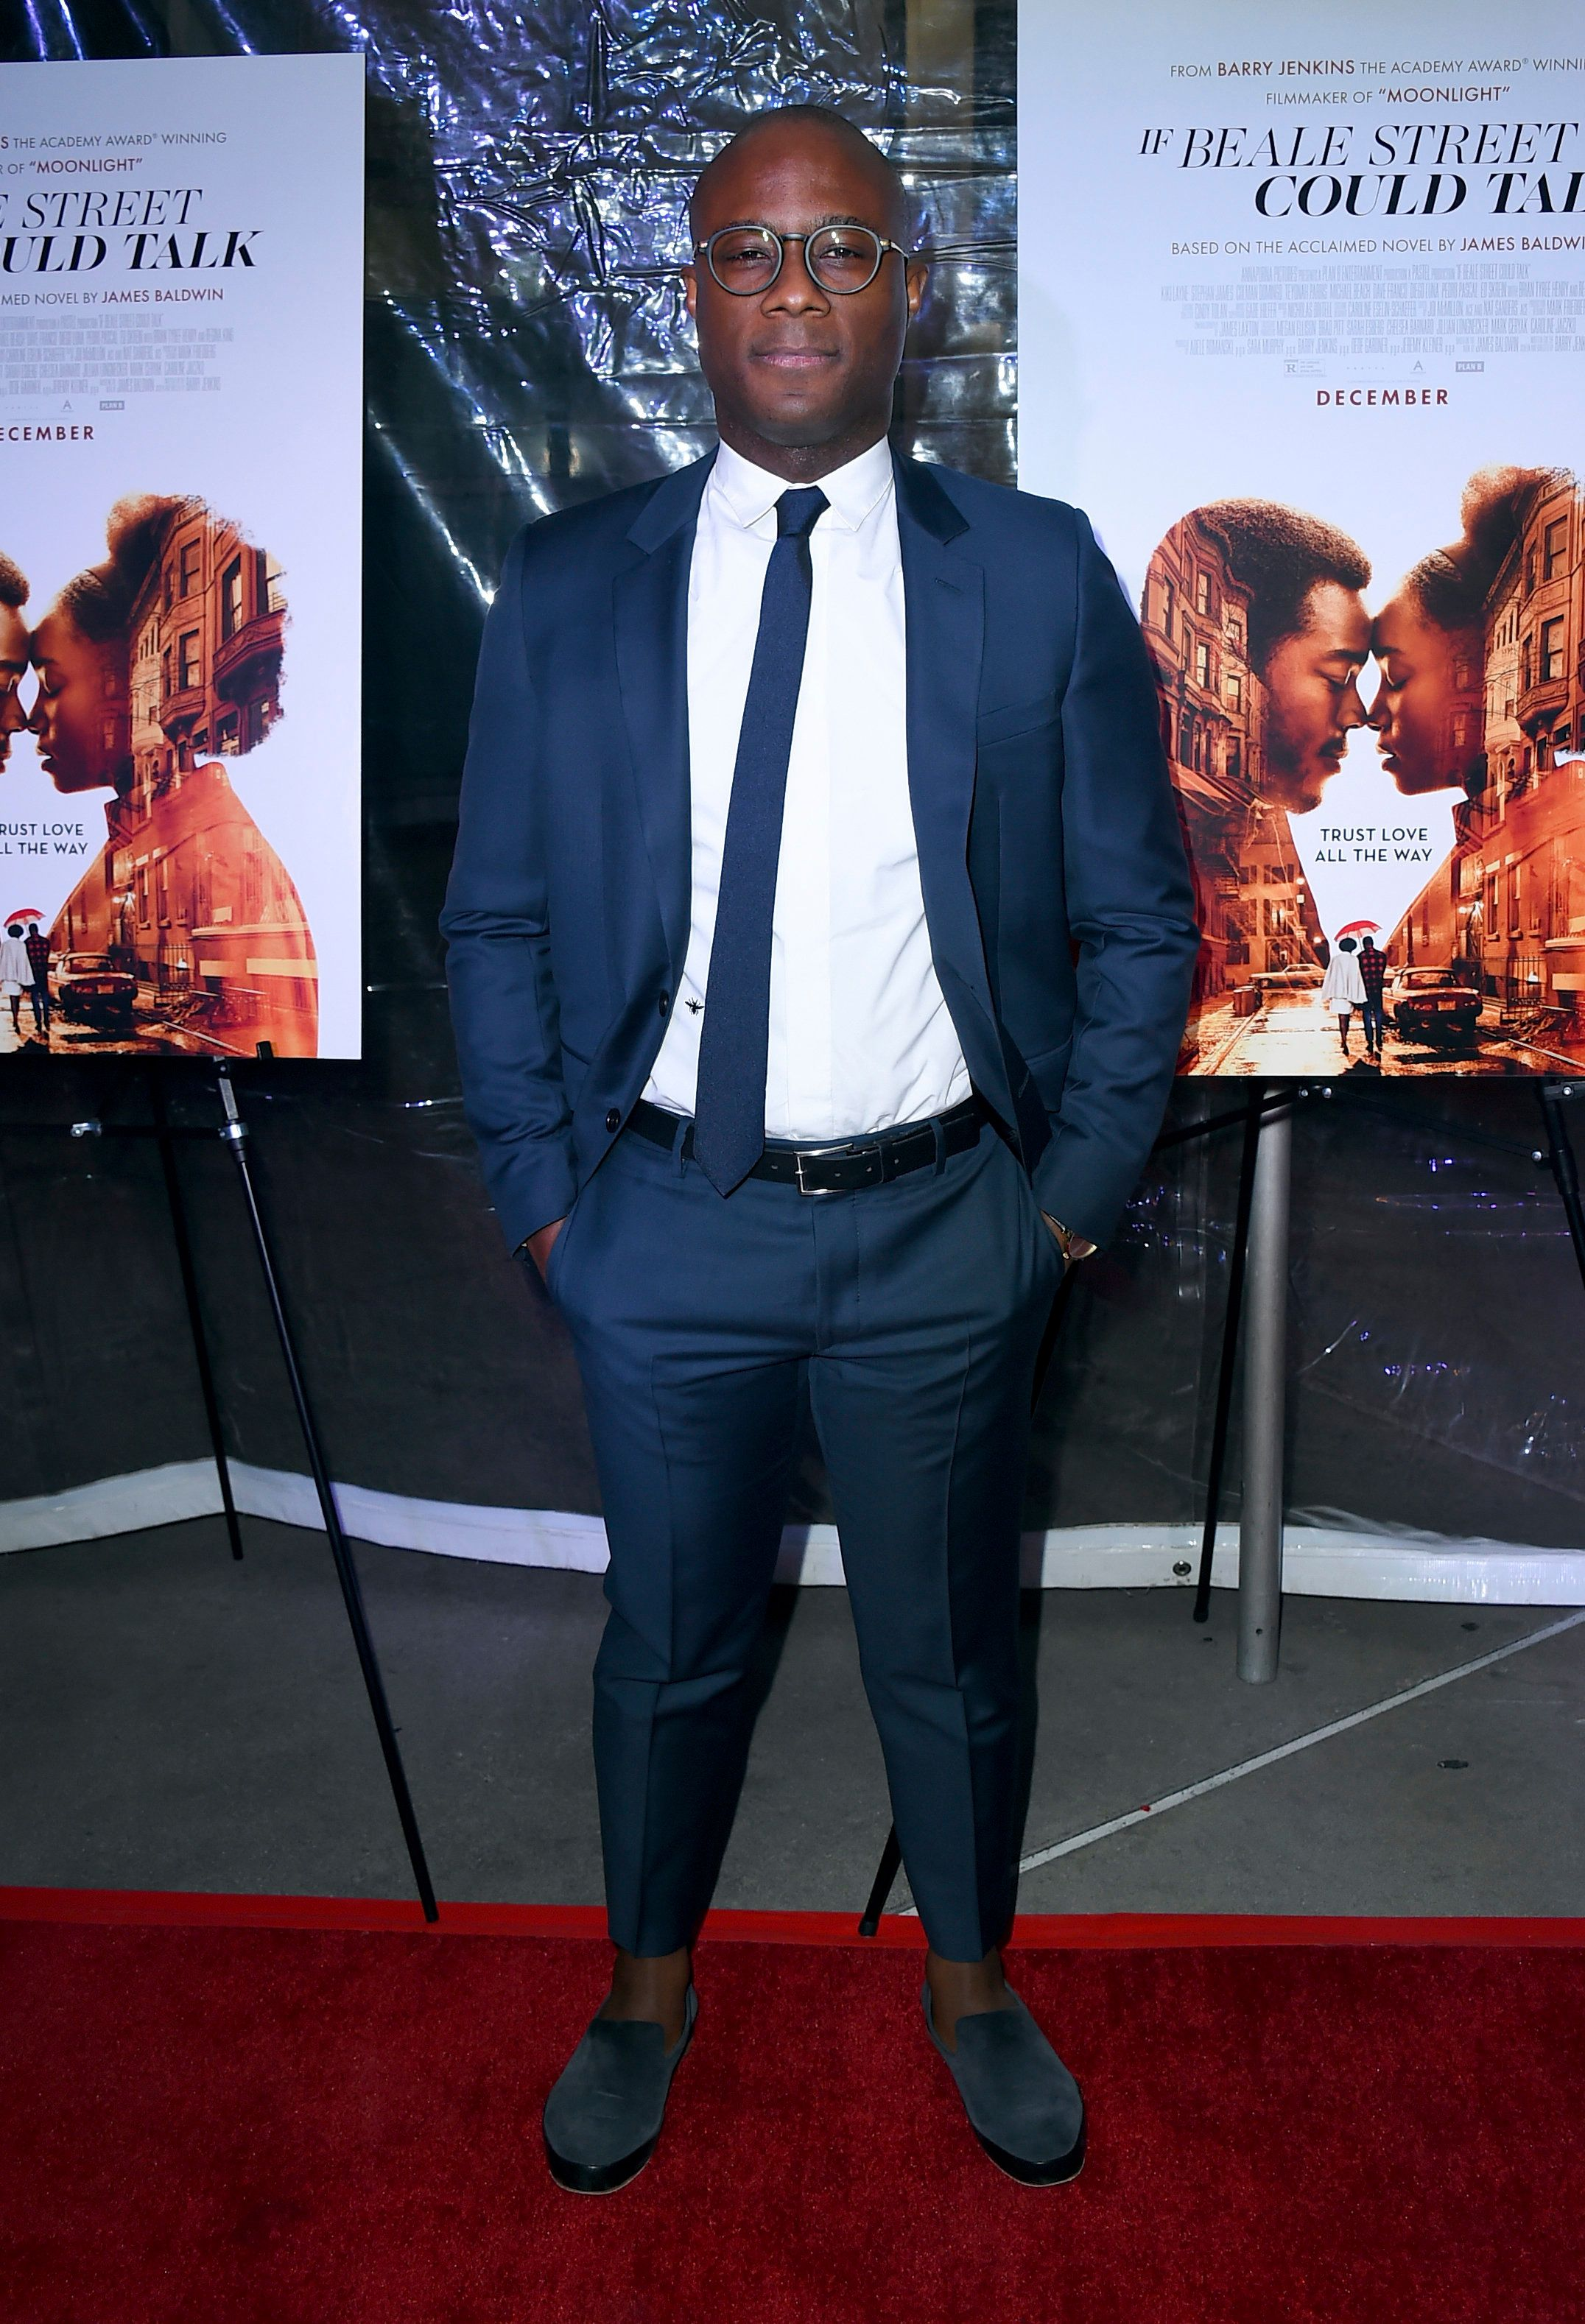 """Barry Jenkins arrives at a special screening of """"If Beale Street Could Talk"""" at ArcLight Hollywood on Tuesday, Dec. 4, 2018, in Los Angeles. (Photo by Jordan Strauss/Invision/AP)"""